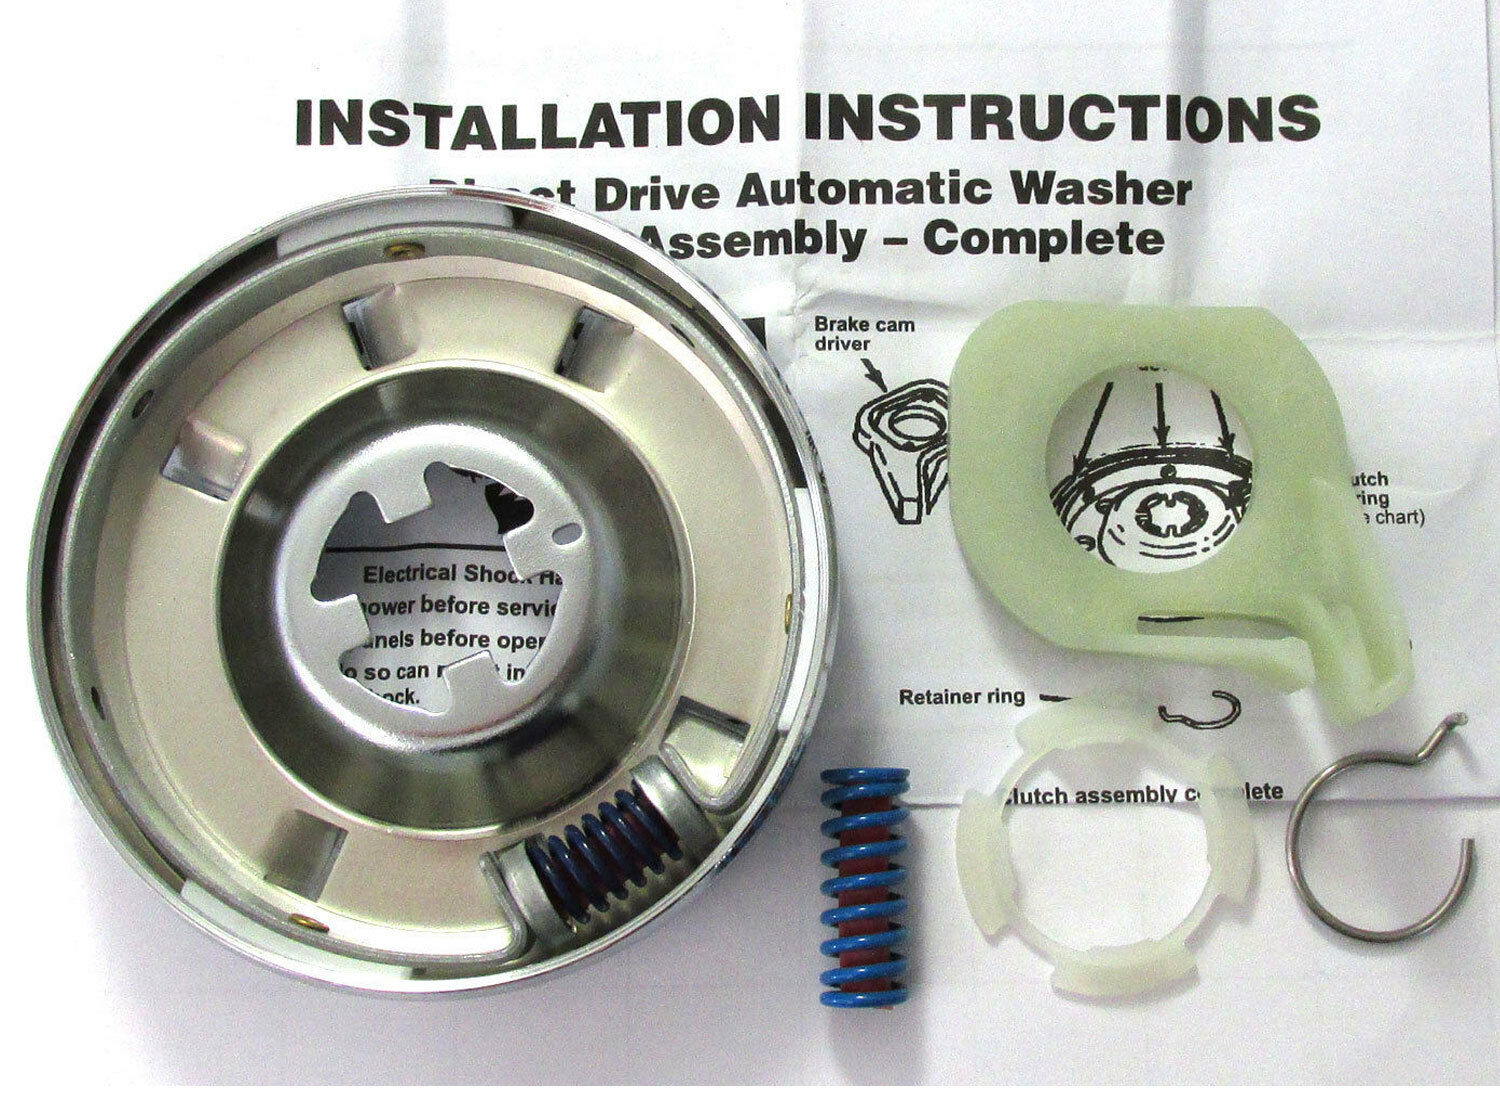 285785 Washer Clutch Whirlpool Kenmore New 1049 Picclick Electric Dryer Thermostat Further Washing Machine Motor Wiring 1 Of 1free Shipping See More